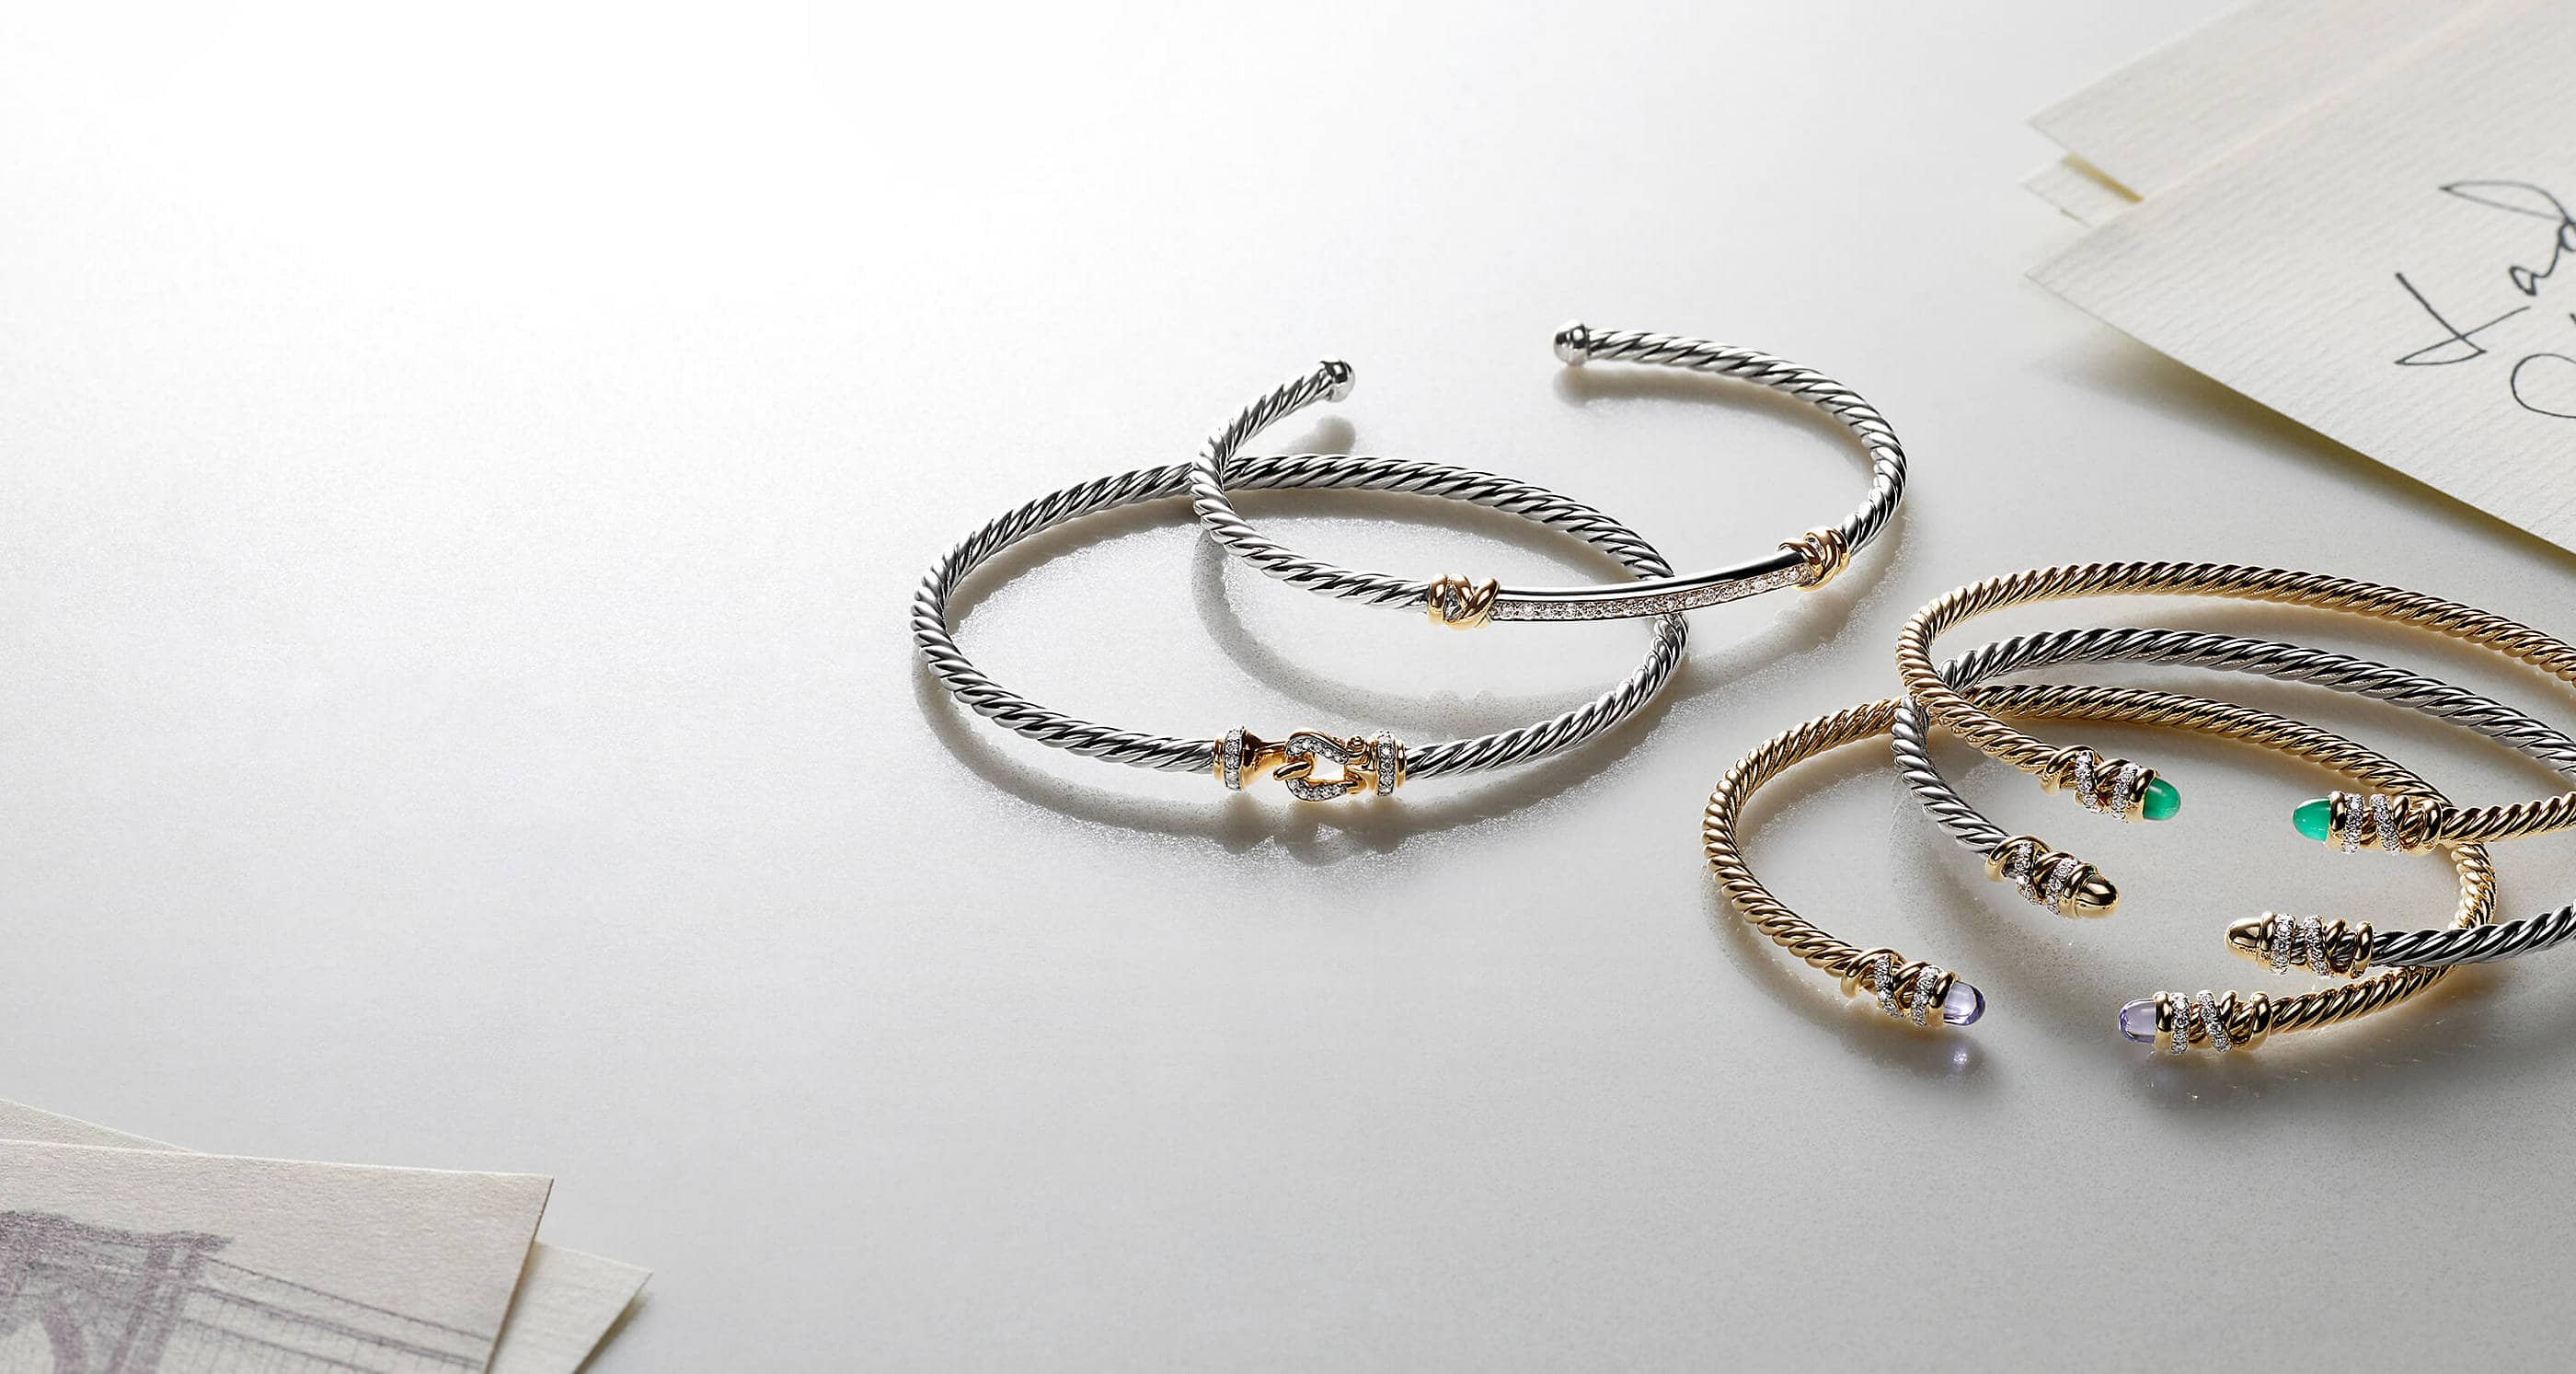 A color photo shows five David Yurman bracelets from the Helena and Buckle collections scattered on a white surface next to a stack of white notecards with black handwriting. Two of the women's bracelets are crafted from 18K yellow gold with pavé white diamond or emerald accents. Three of the women's bracelets are crafted from sterling silver with 18K yellow gold and pavé white diamond accents.